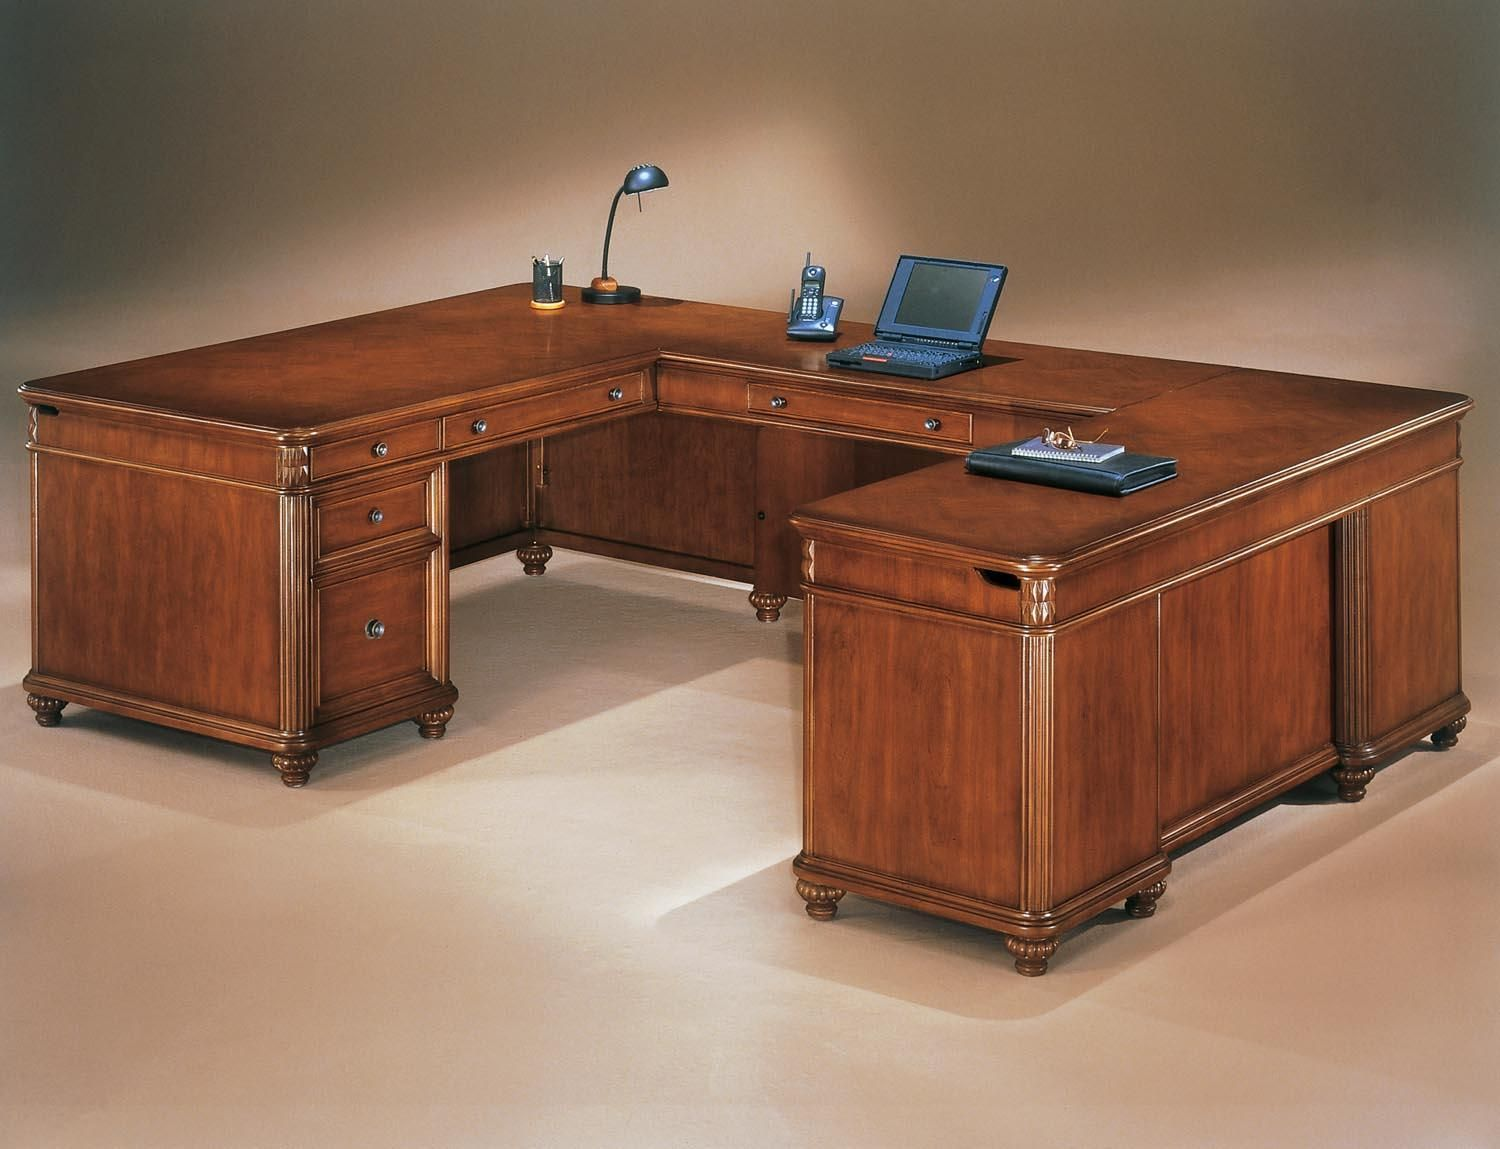 Office Desk U Shaped   Office Desk U Shaped   Ideas For Decorating A Desk,  Ameriwood Home Pursuit U Shaped Desk With Hutch Bundle